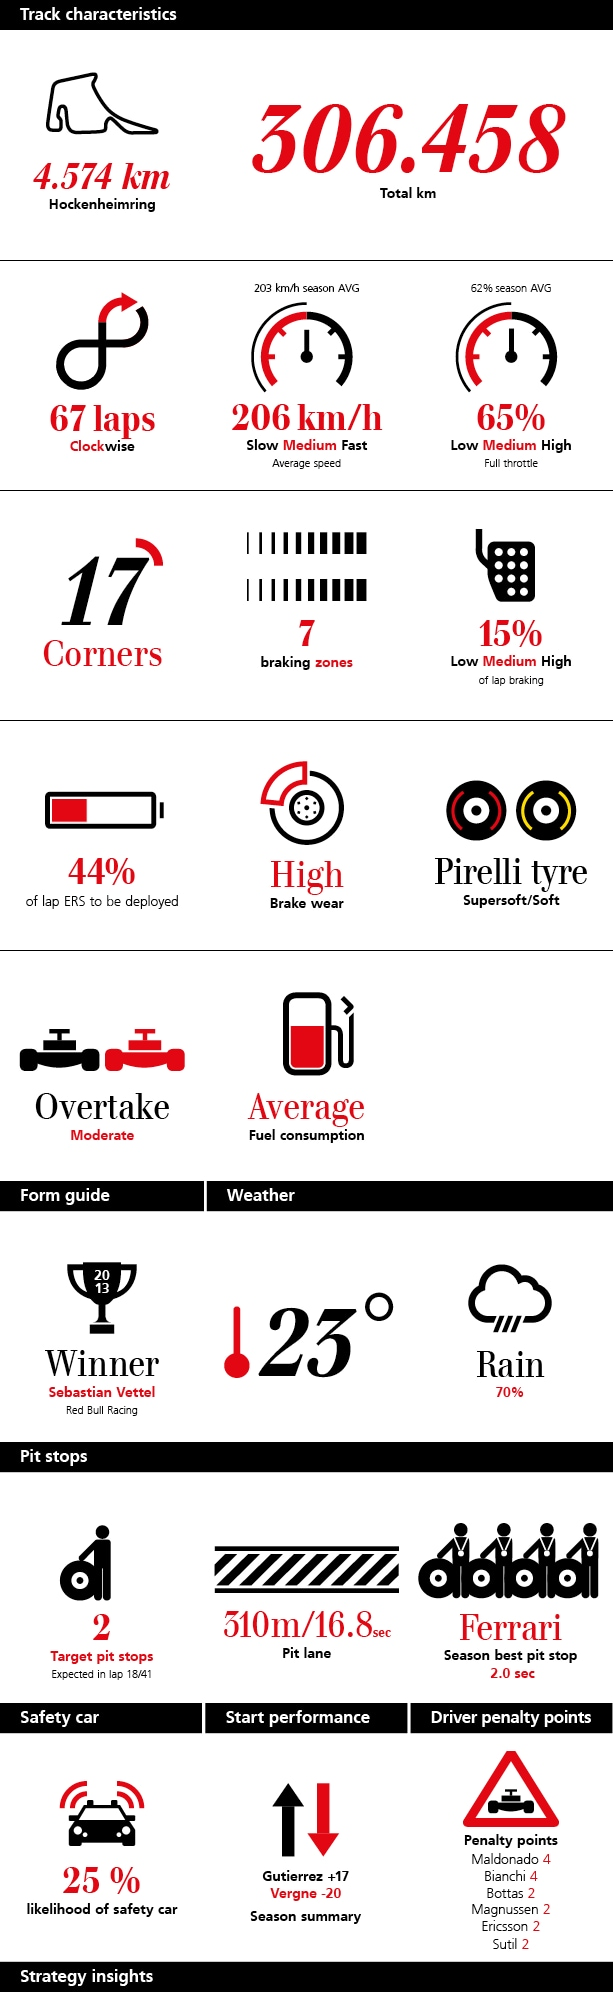 ubs-formula-1-f1-race-strategy-briefing-infographic-hockenheim-germany